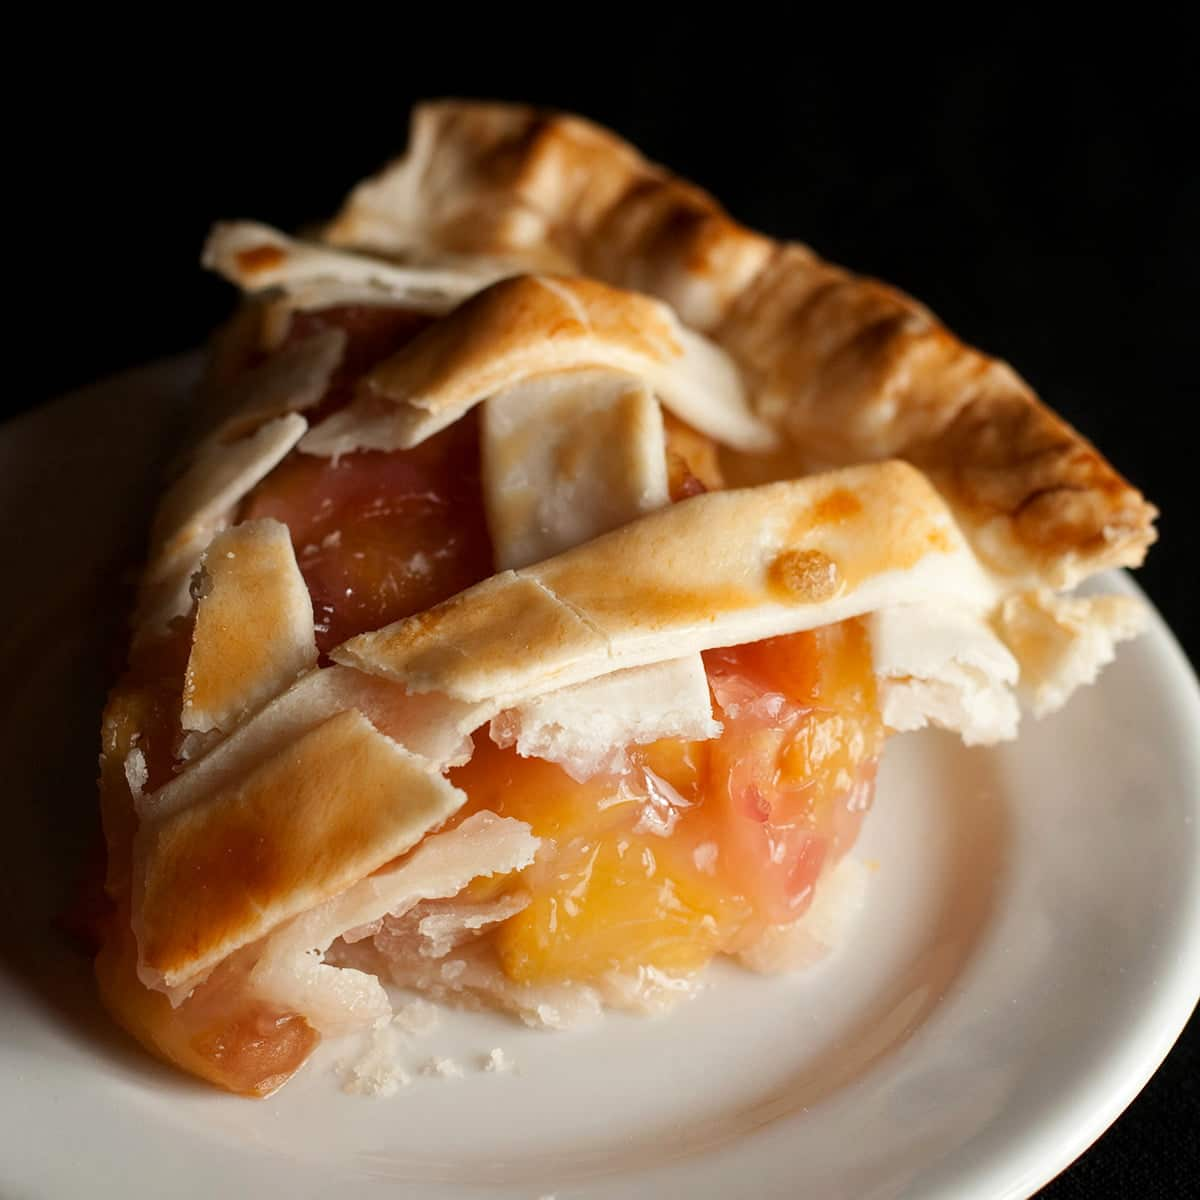 A close up view of a slice of southern comfort peach pie, on a white plate.